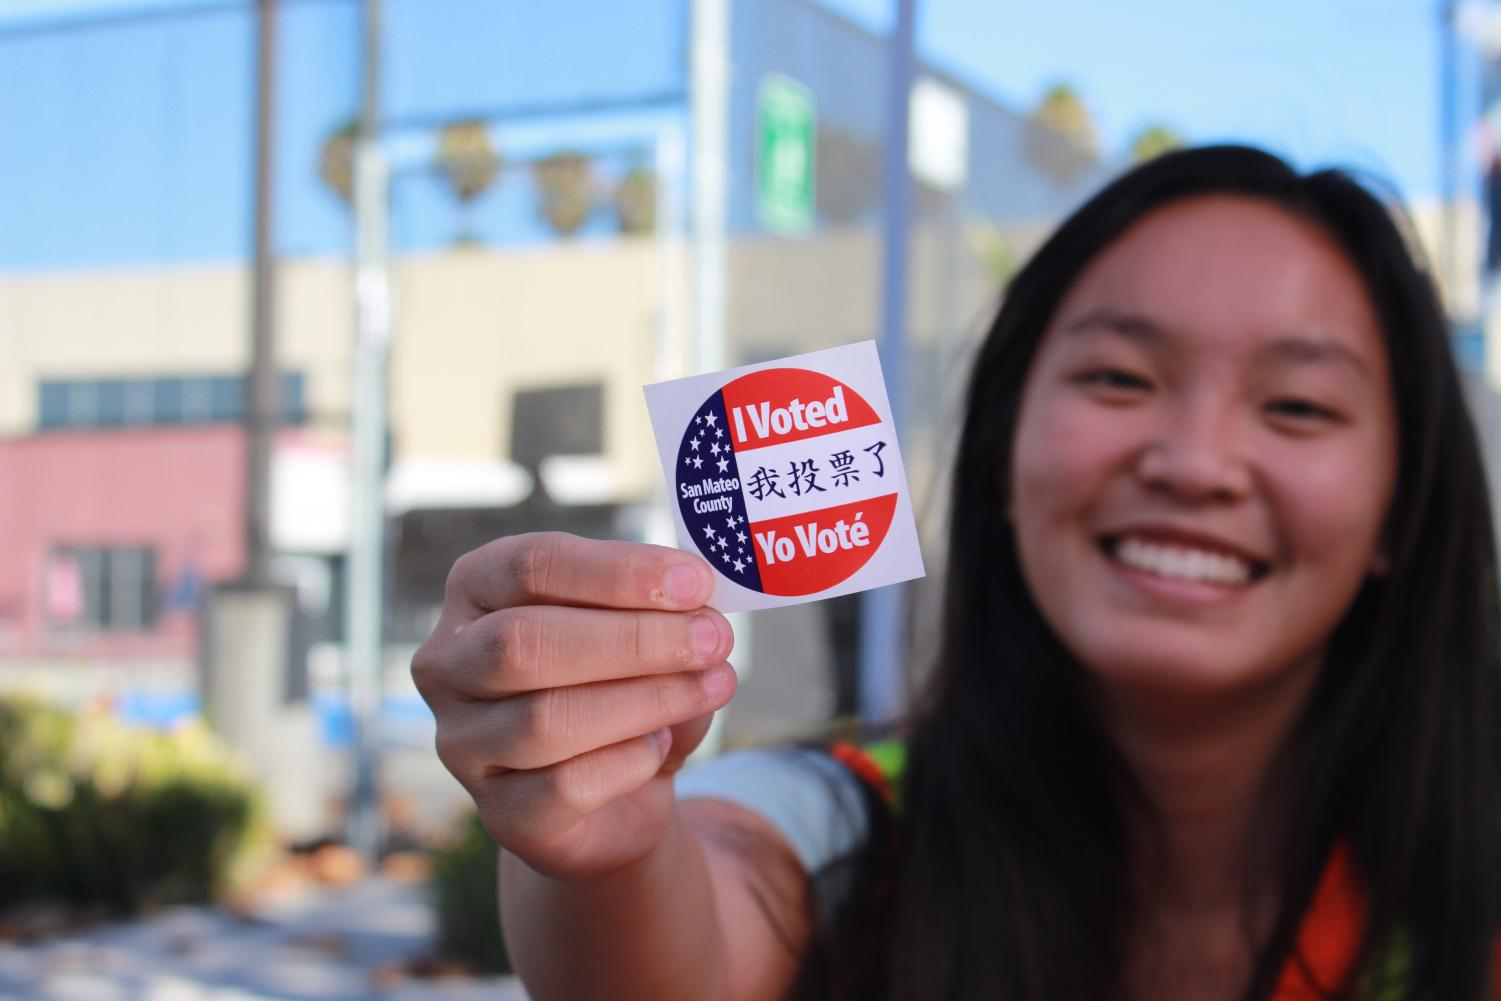 Madison Pelarca, a volunteer at the polls and a student at Carlmont High School, displays an